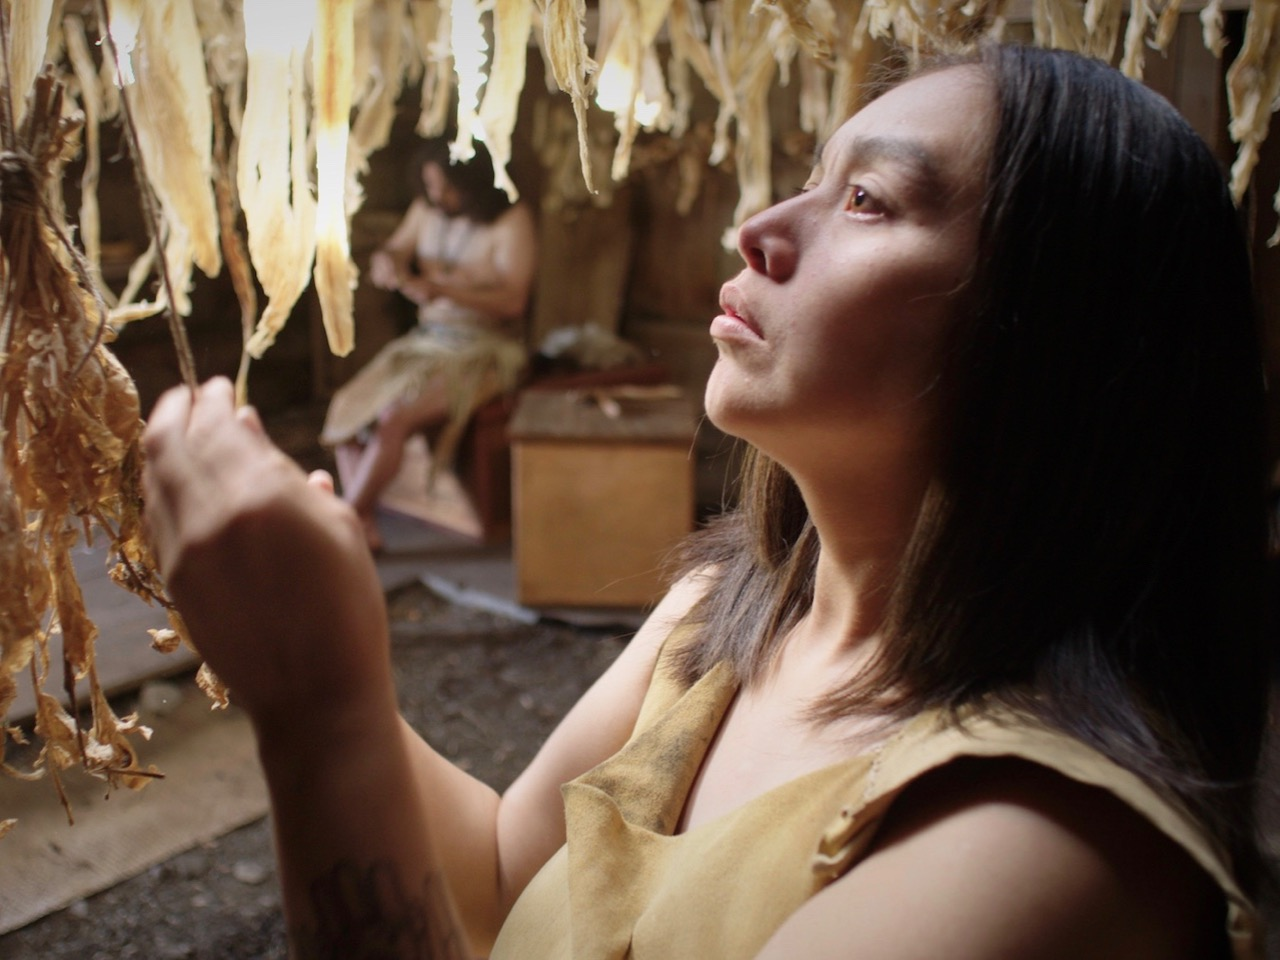 NMAI News: Film festival showcases Indigenous voices from around the world